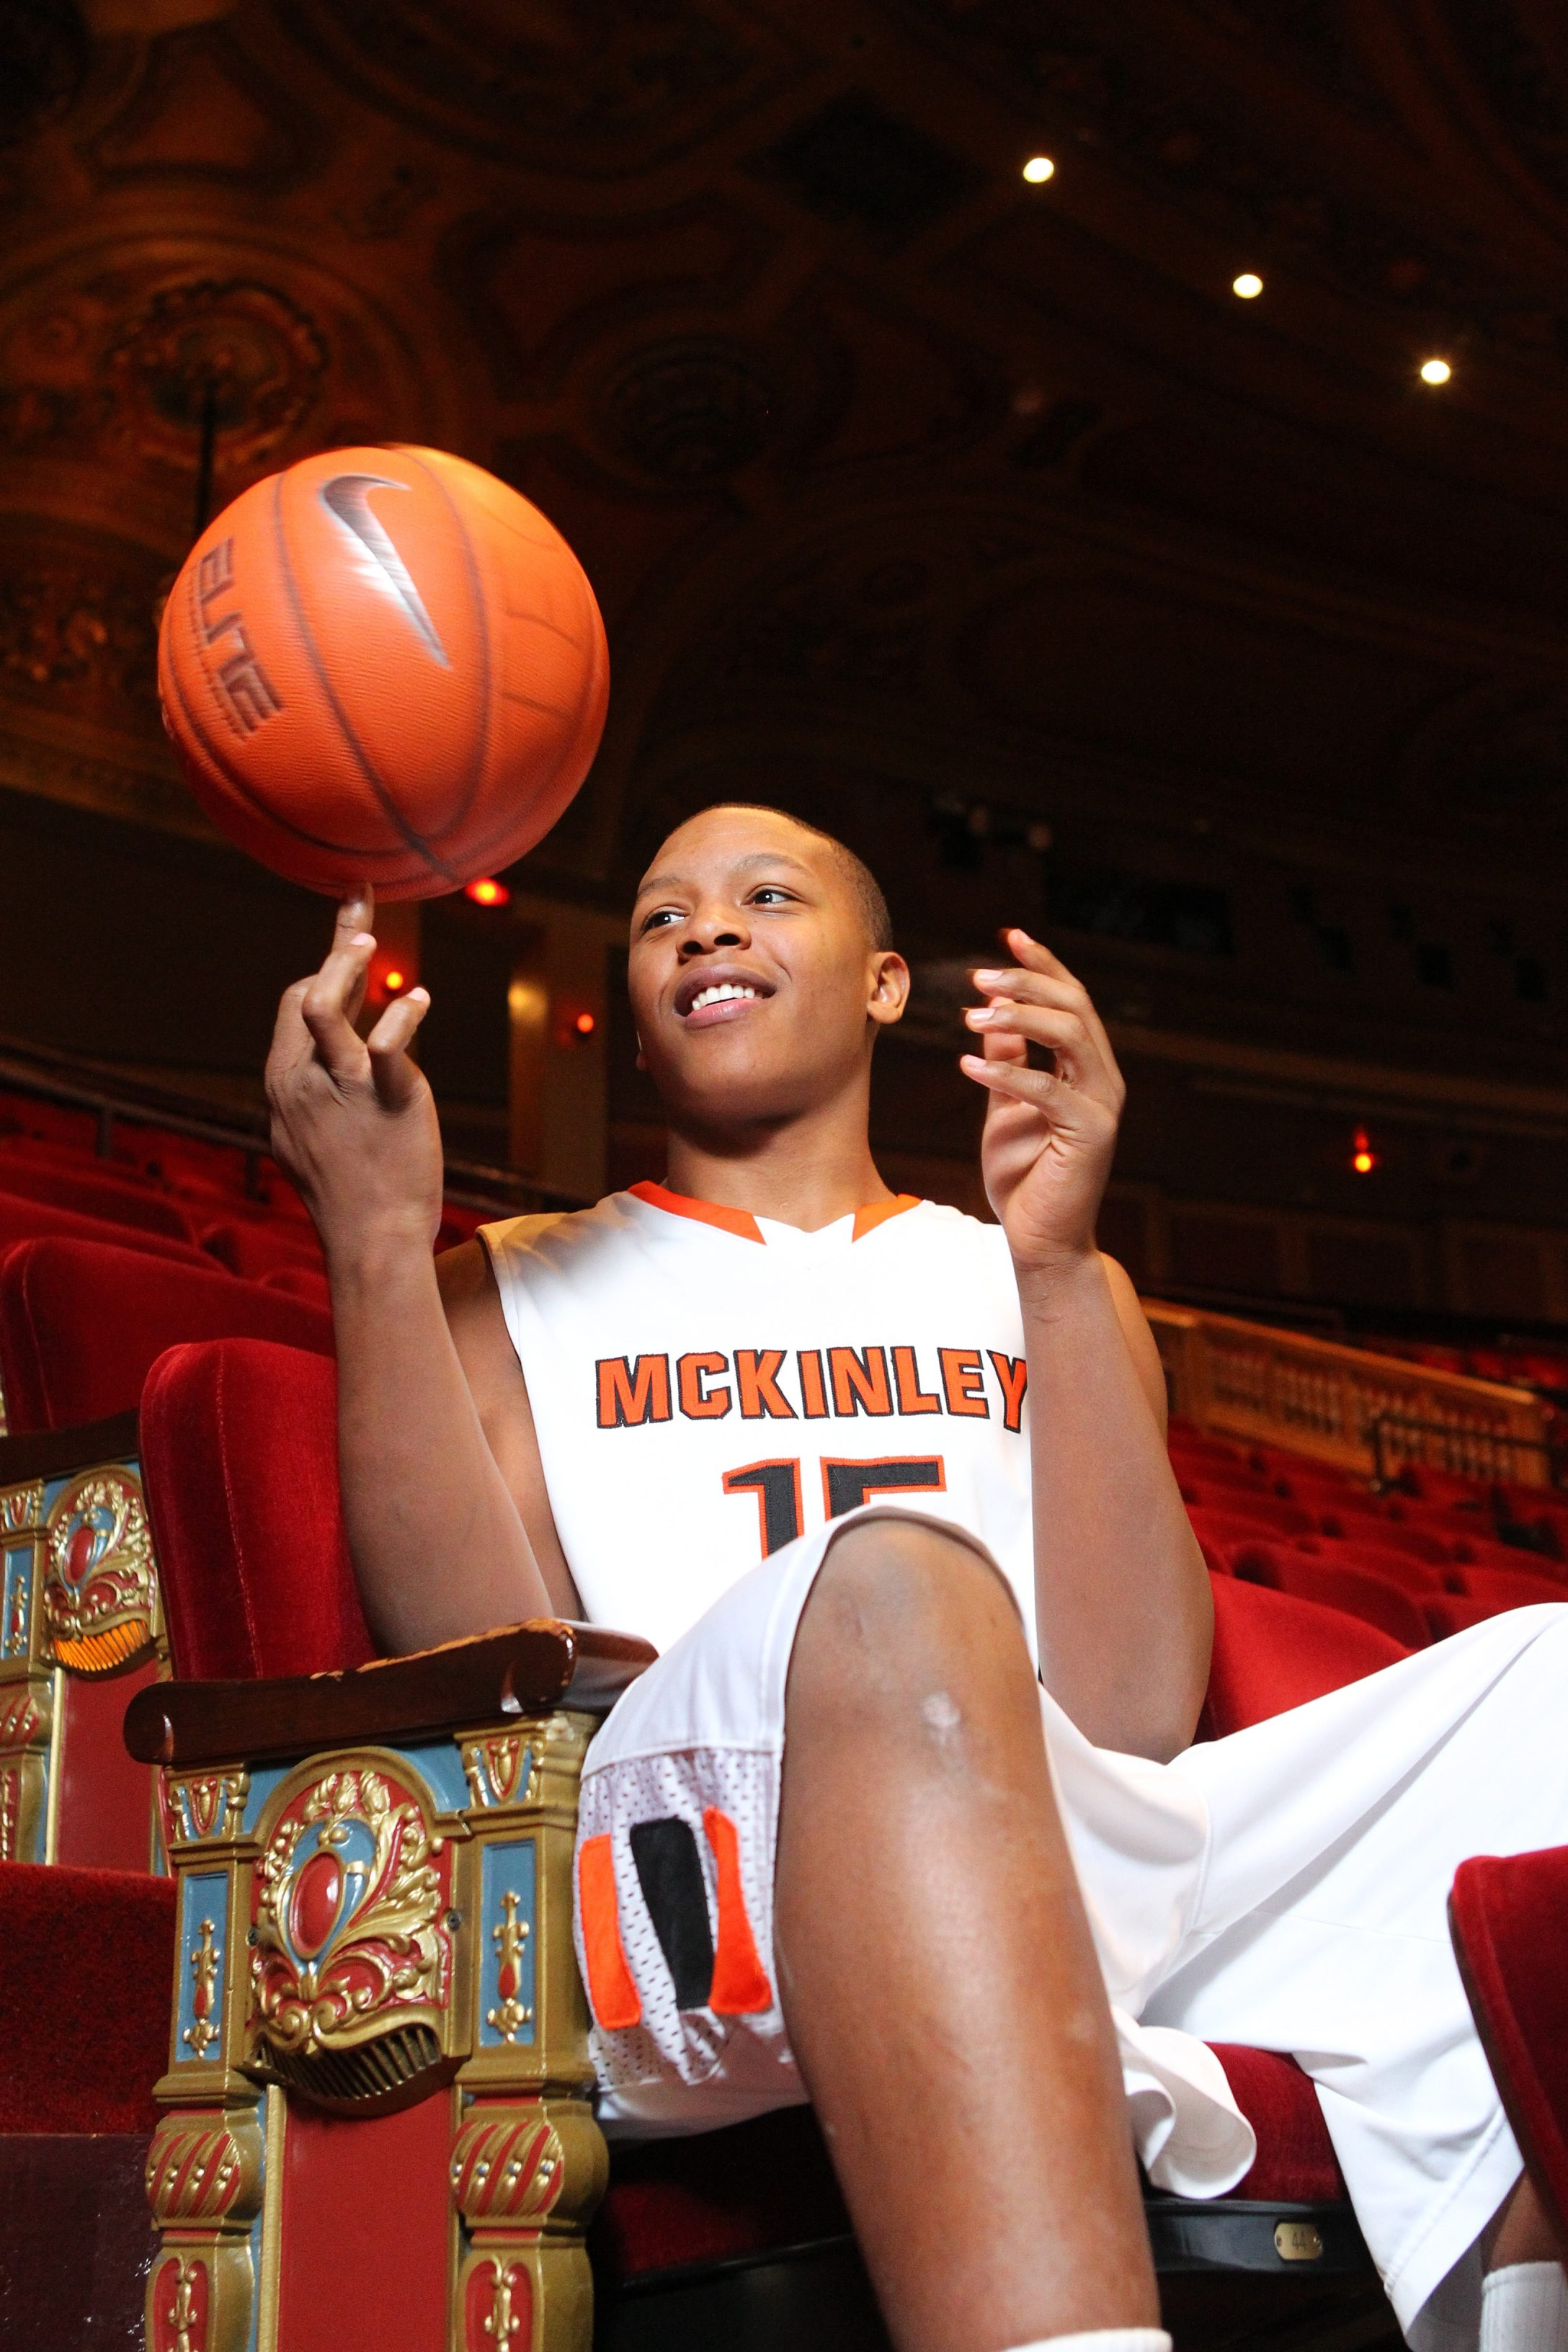 All Western New York basketball first team Marcus Morris from McKinley at Shea's in Buffalo Monday, March 25, 2013.  (Mark Mulville/Buffalo News)